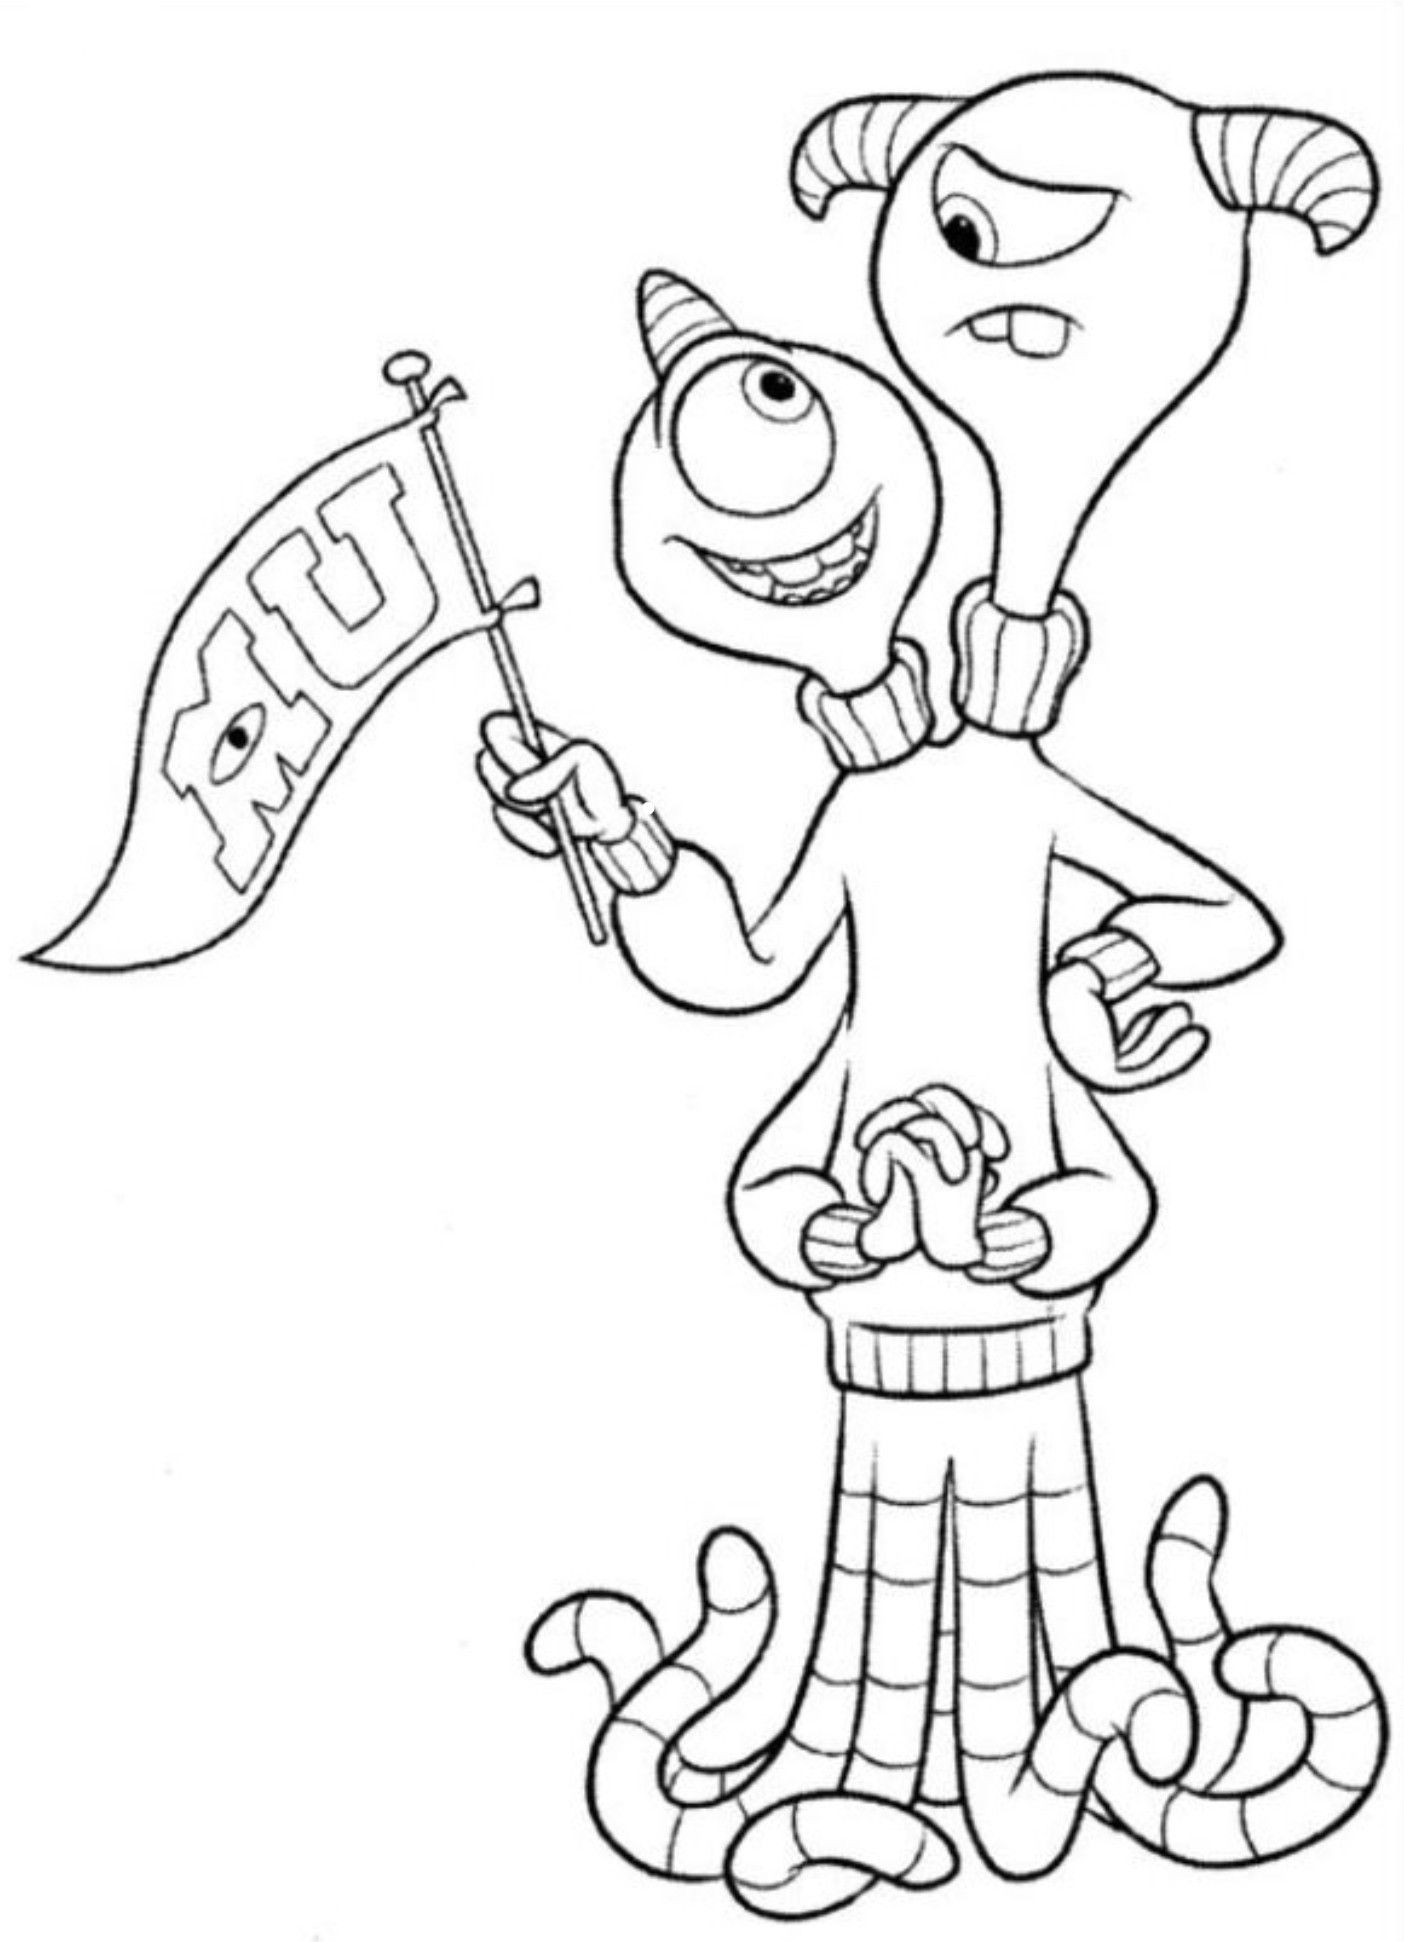 Pin By Jada Chan On Coloring Monster Coloring Pages Disney Coloring Pages Cinderella Coloring Pages